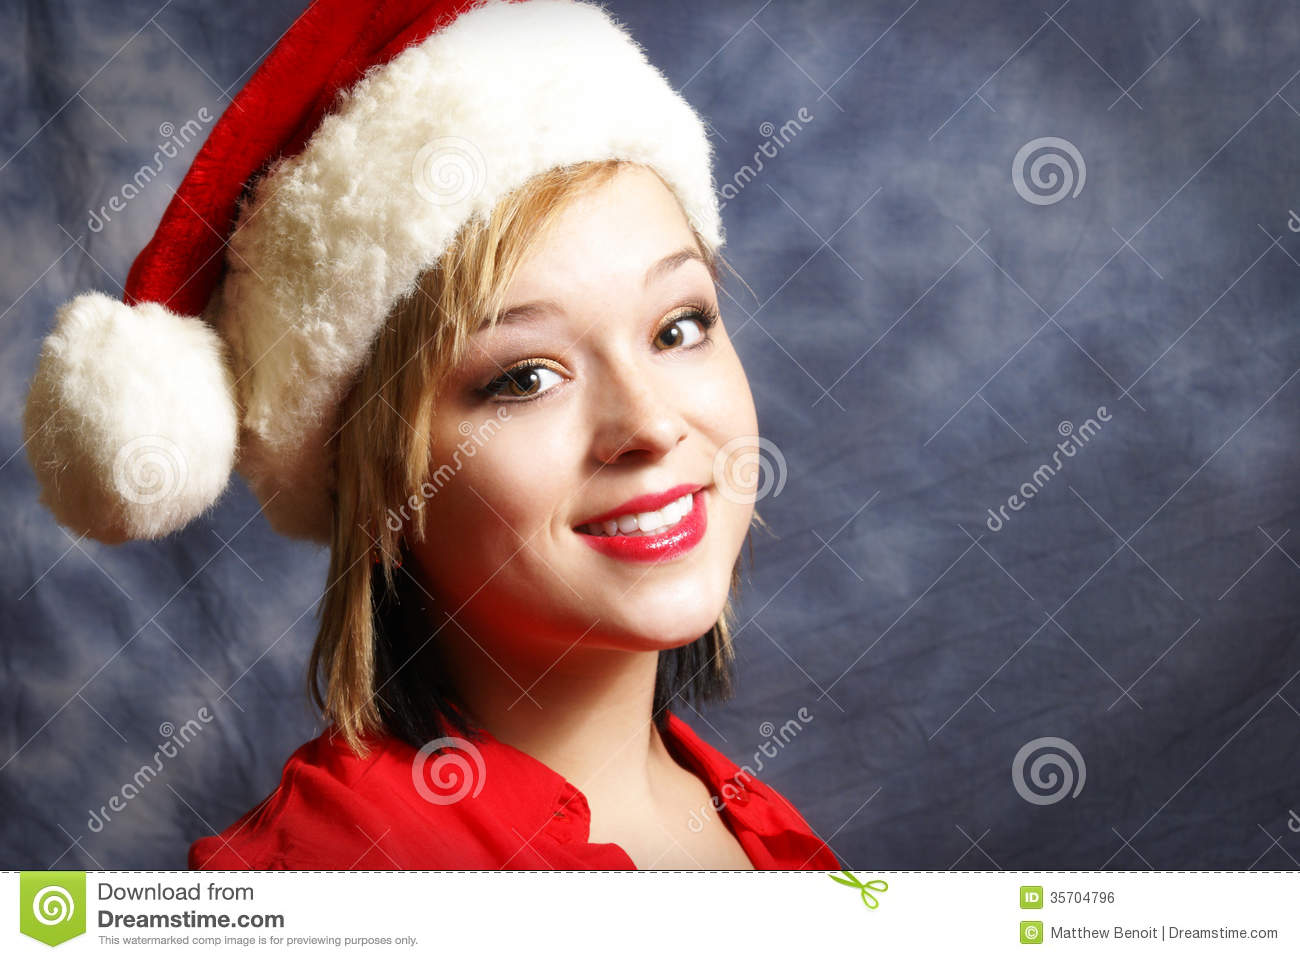 A Happy Young Woman Wearing A Santa Hat For The Spirit Of Christmas